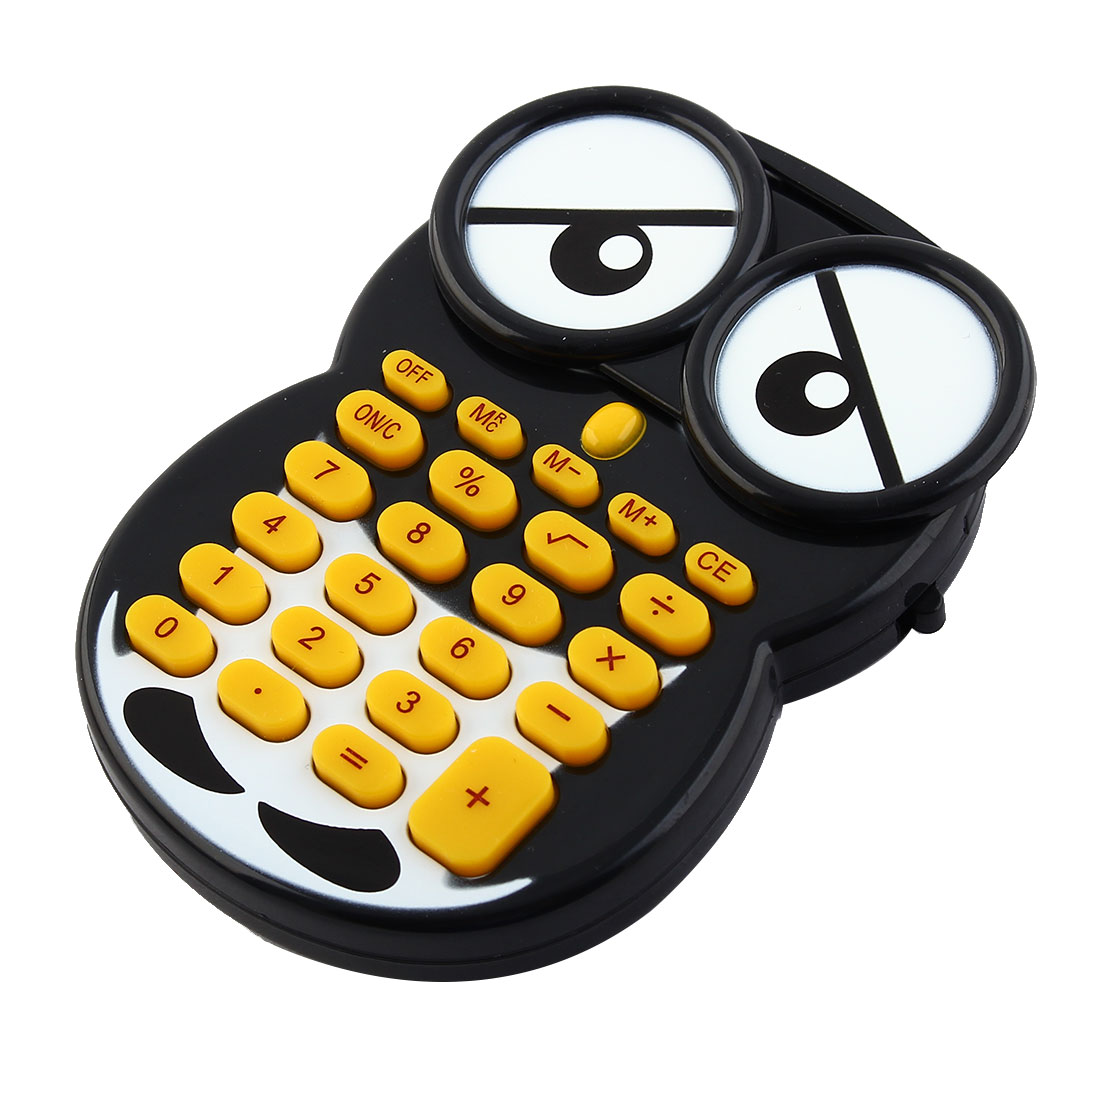 8 Digits Mini Black White Owl Yellow Button Calculator